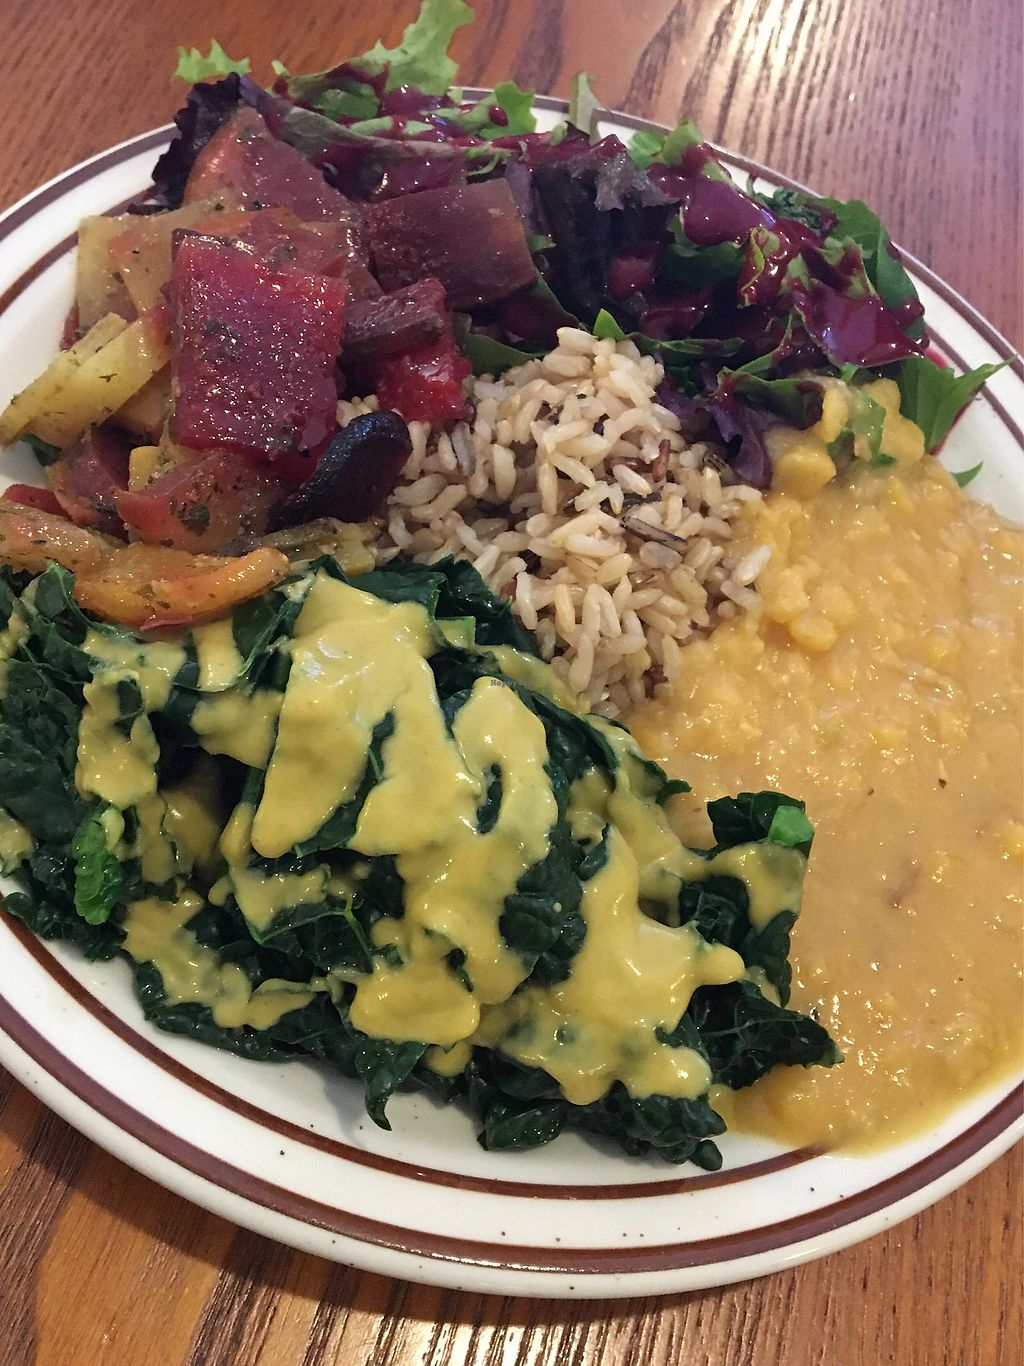 """Photo of Shangri-La Vegan - Telegraph  by <a href=""""/members/profile/Clean%26Green"""">Clean&Green</a> <br/>Yum! <br/> January 7, 2018  - <a href='/contact/abuse/image/74865/343807'>Report</a>"""